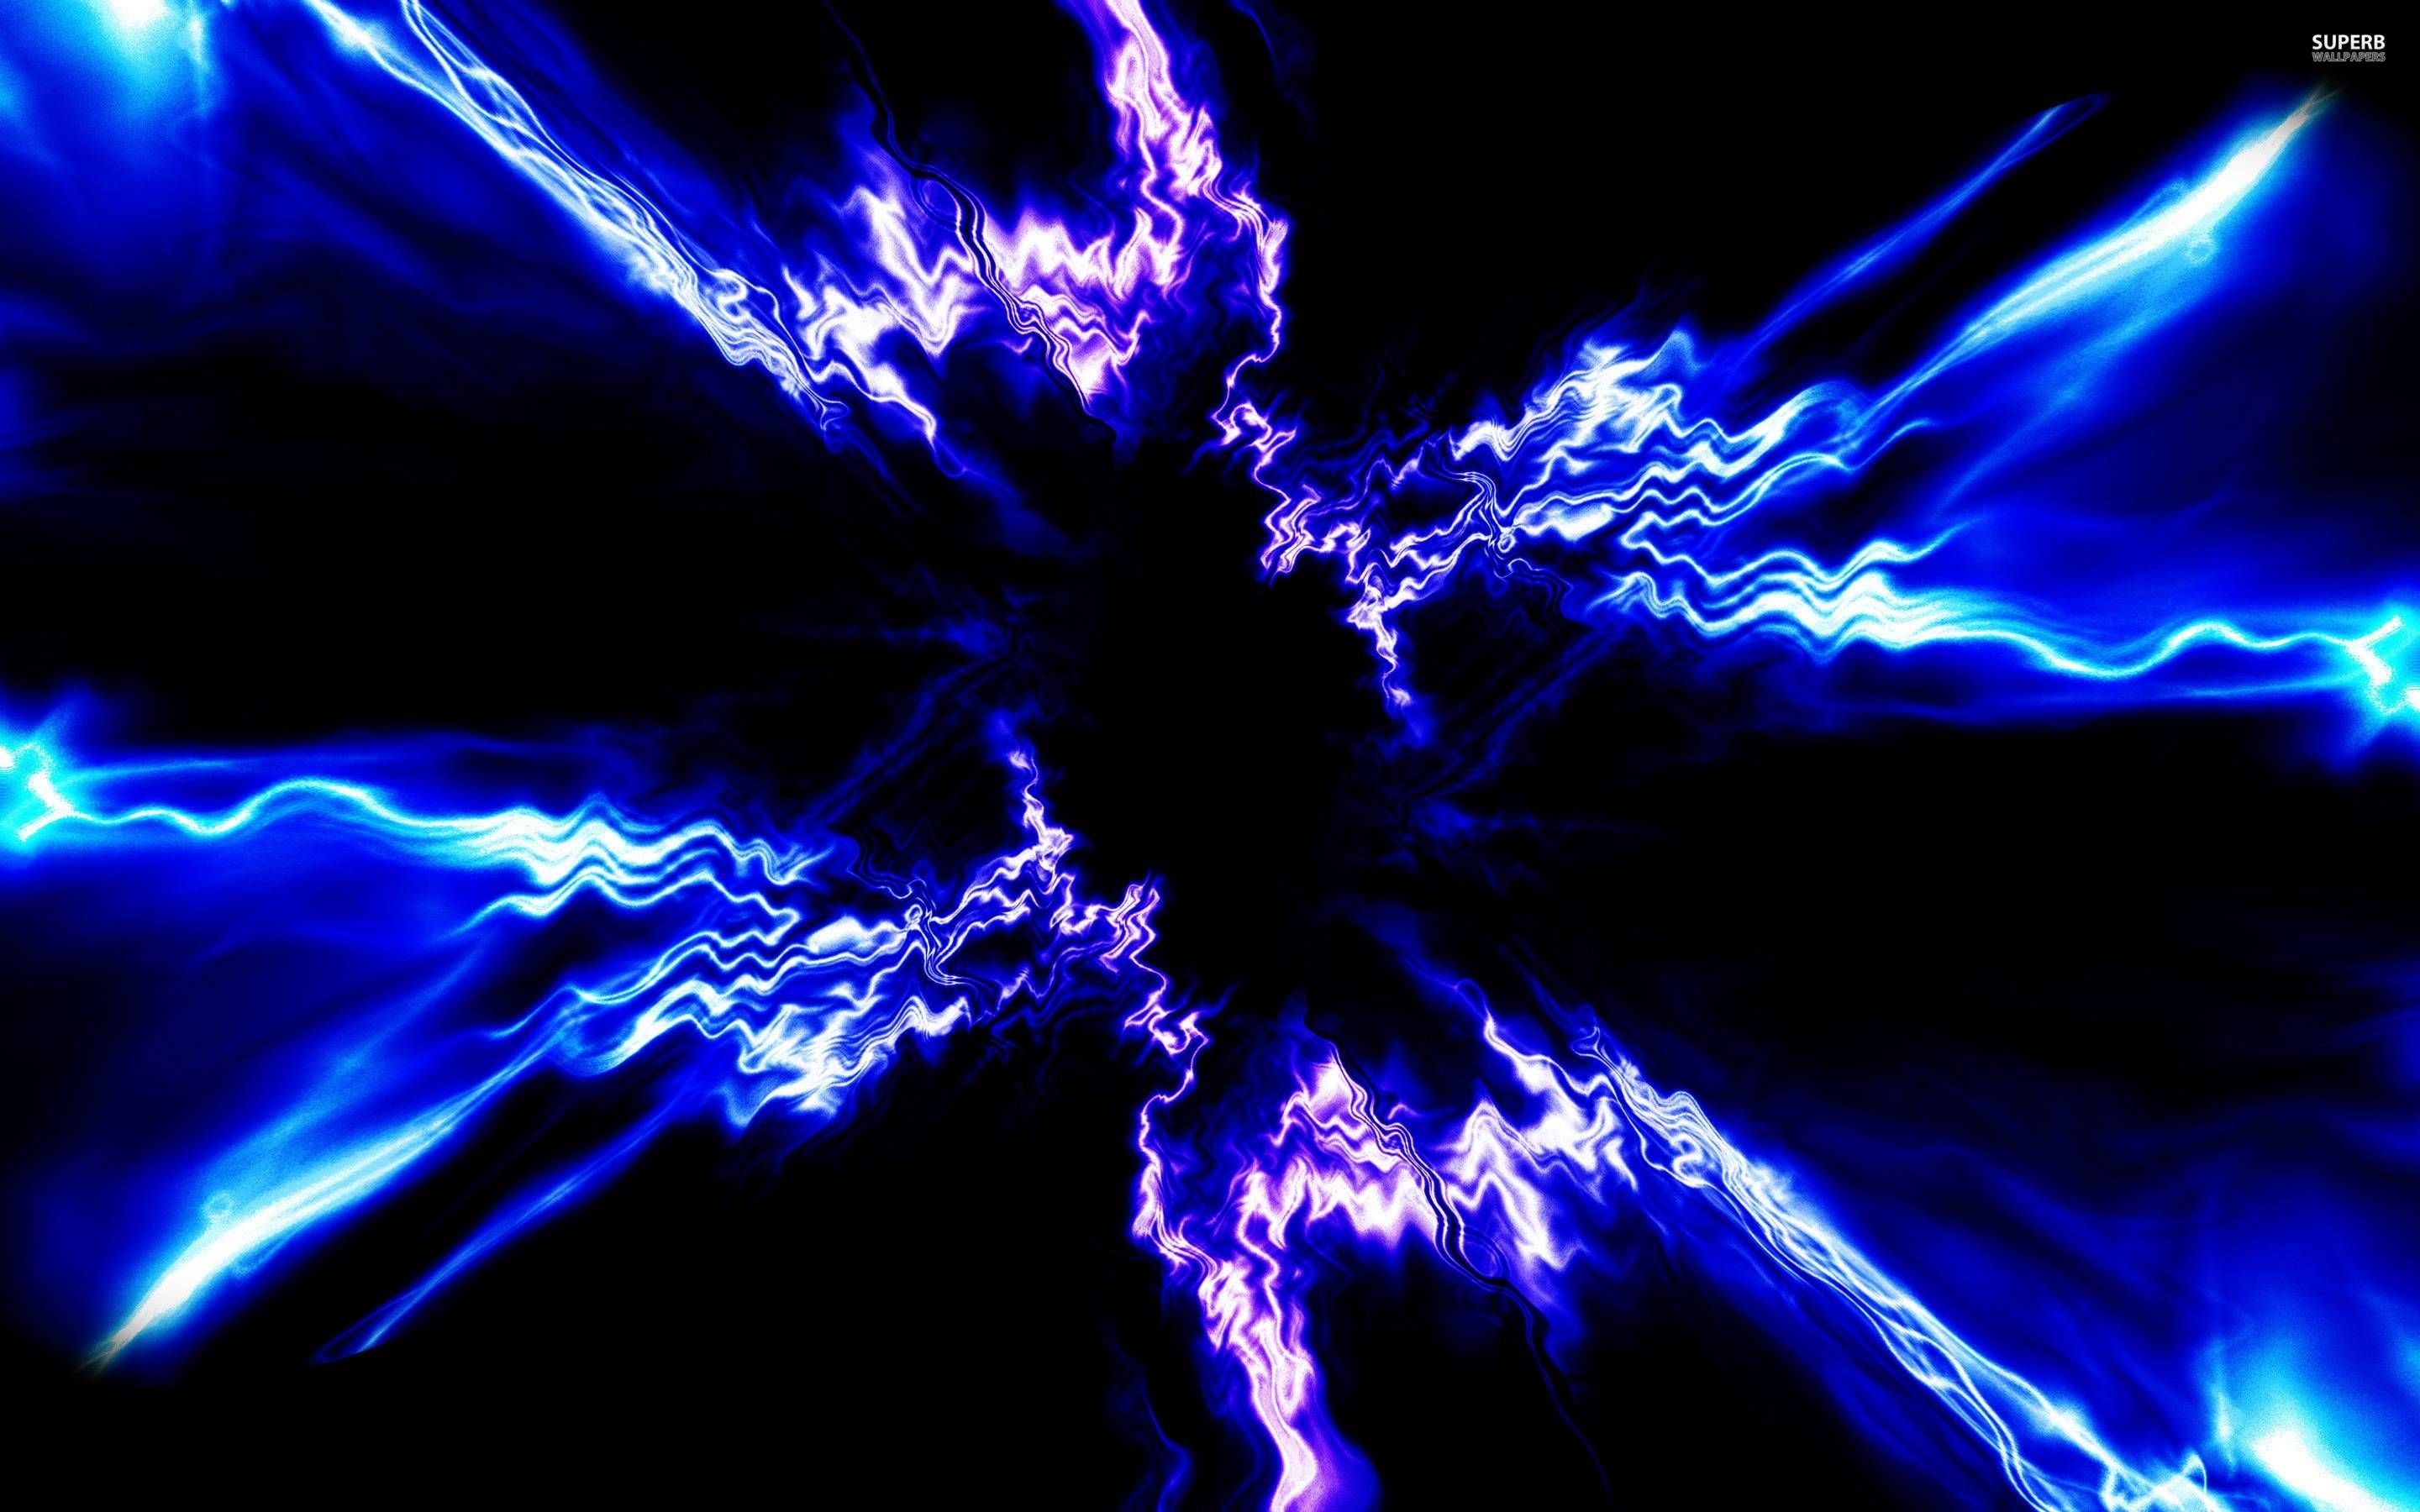 Electric Blue Wallpapers   Top Electric Blue Backgrounds 2880x1800